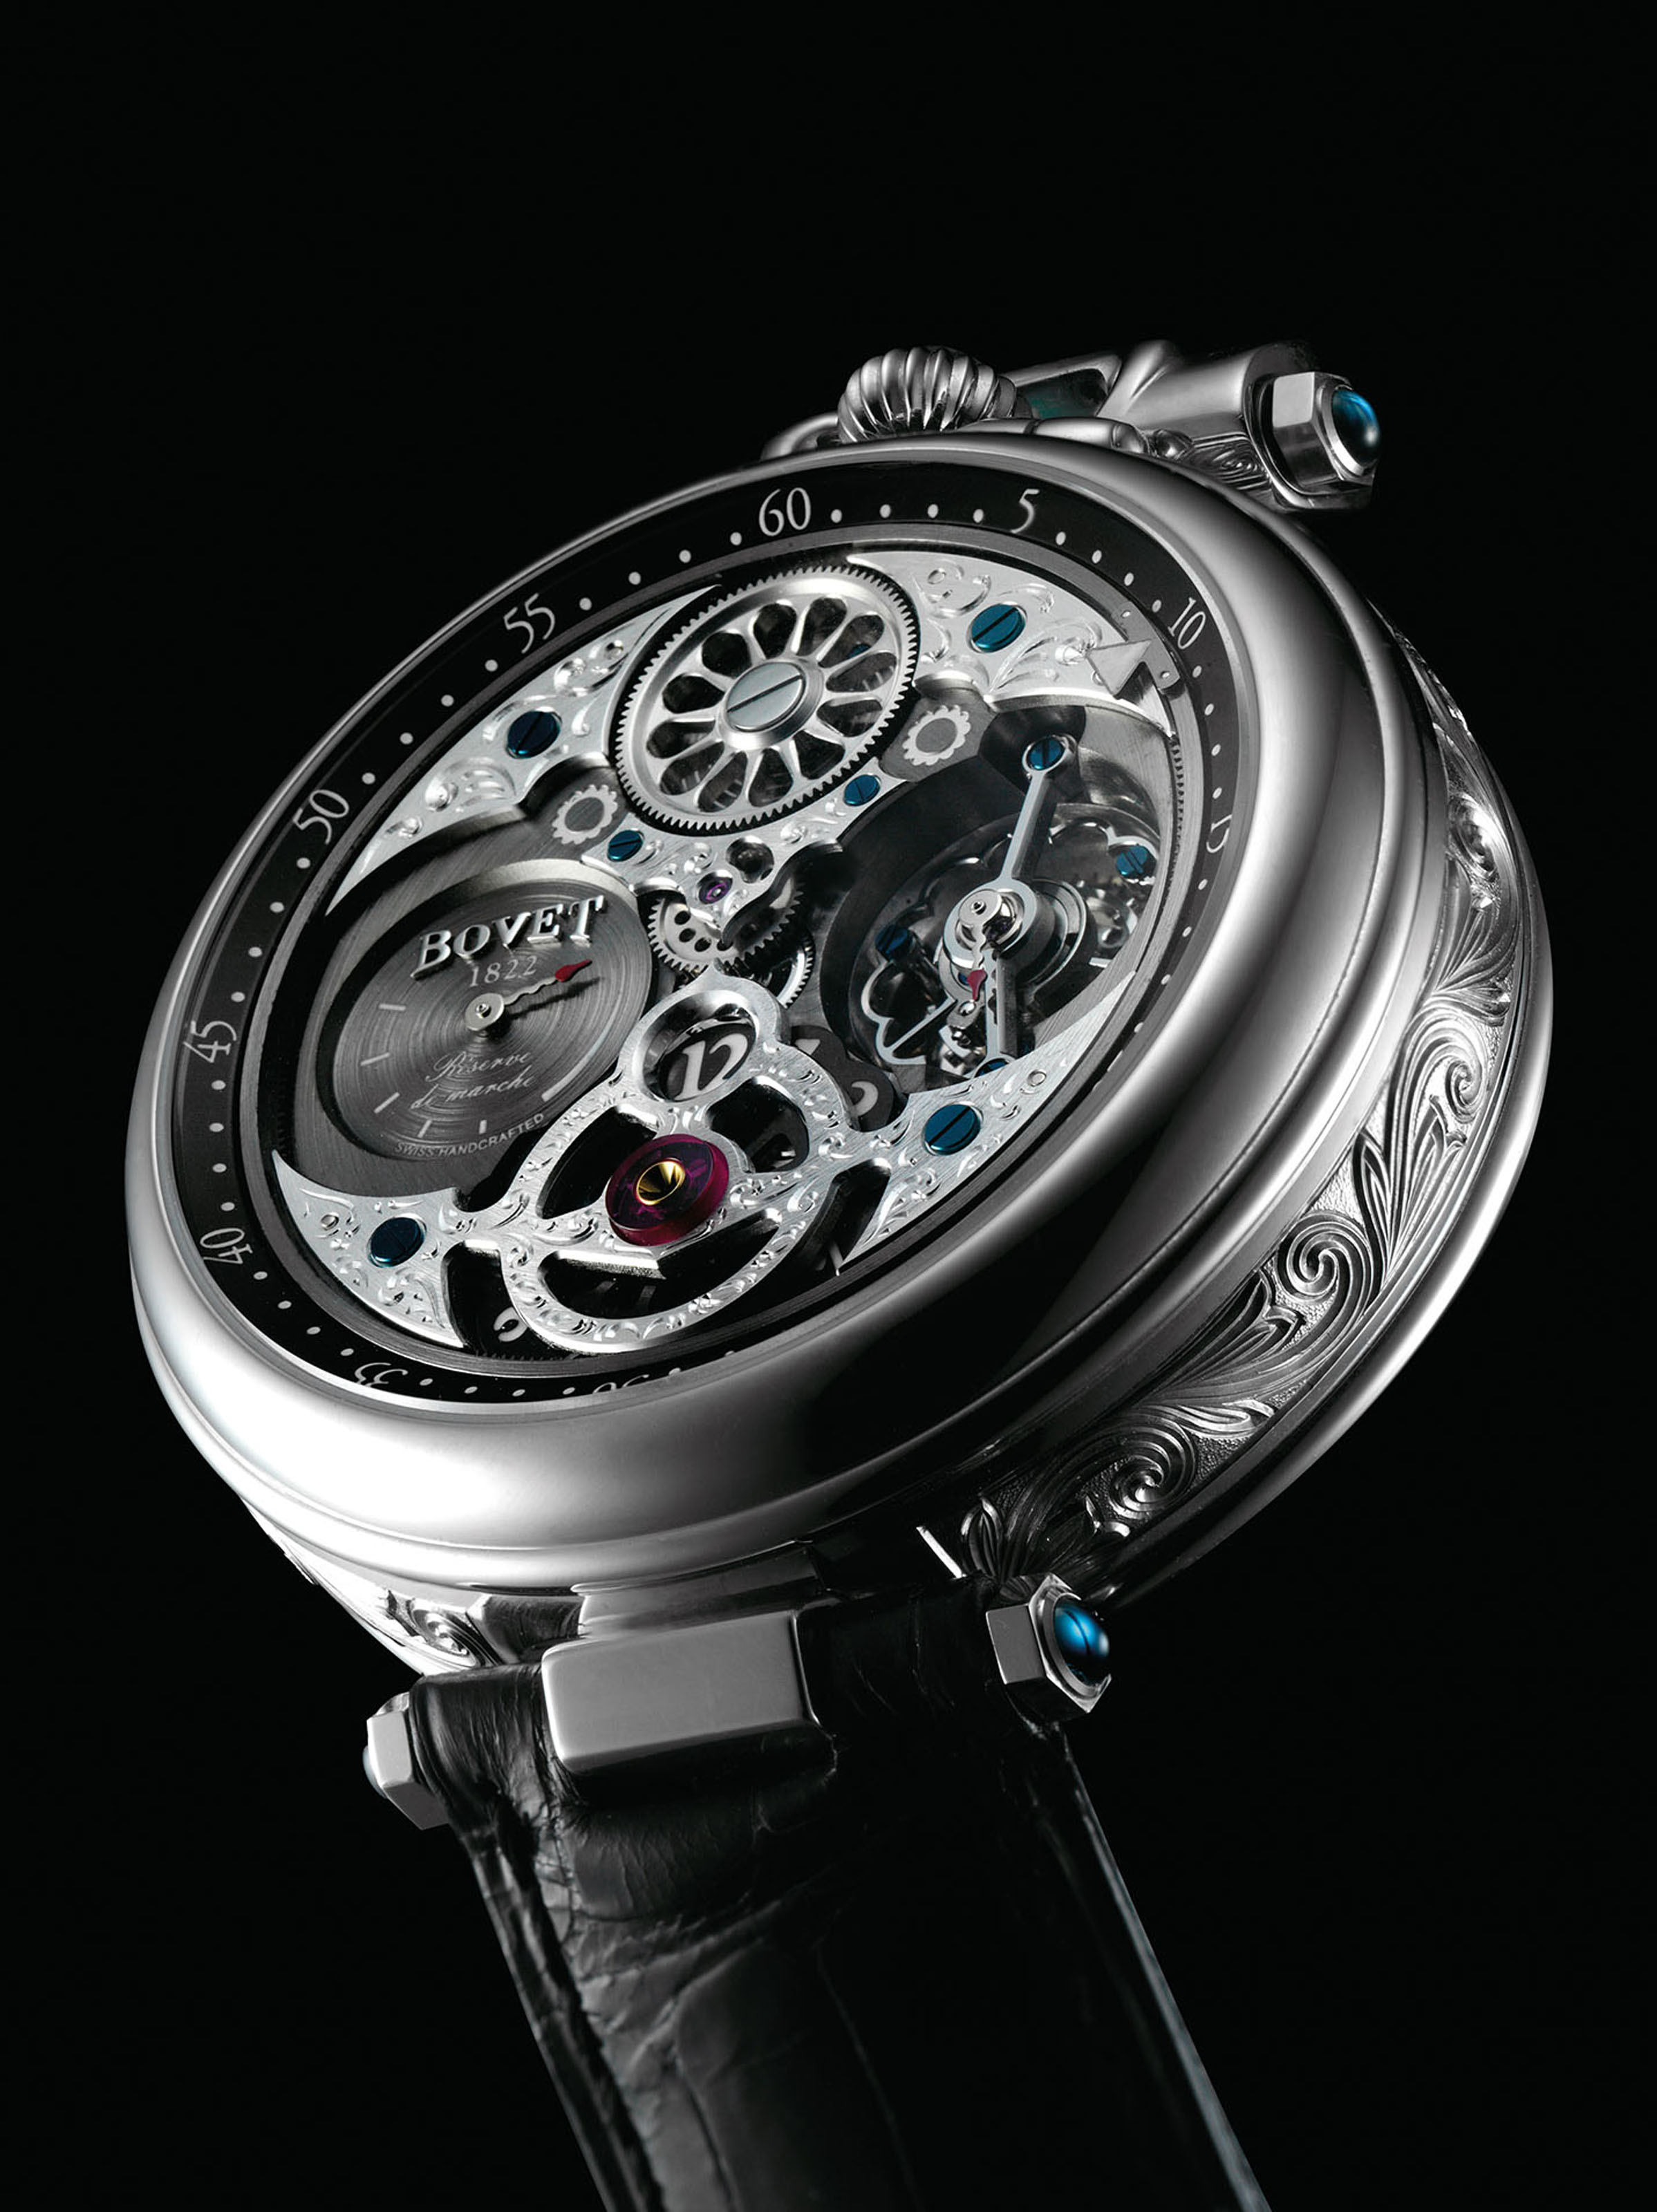 BOVET. A VERY FINE, LARGE AND UNIQUE 18K WHITE GOLD AUTOMATIC SKELETONISED TOURBILLON JUMP HOUR TWIN BARREL WRISTWATCH WITH POWER RESERVE